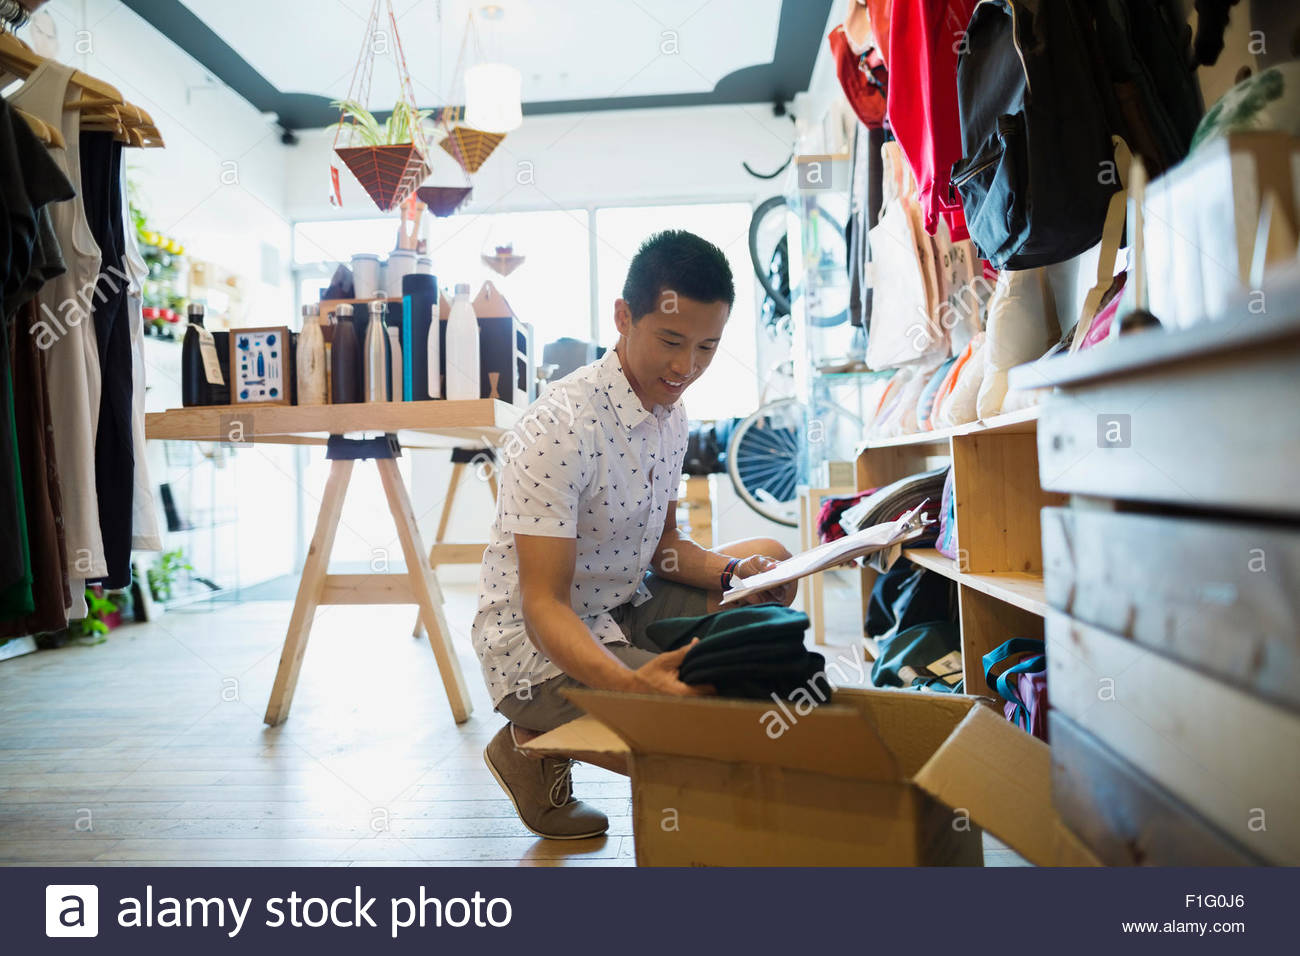 Shop owner with clipboard processing new merchandise - Stock Image